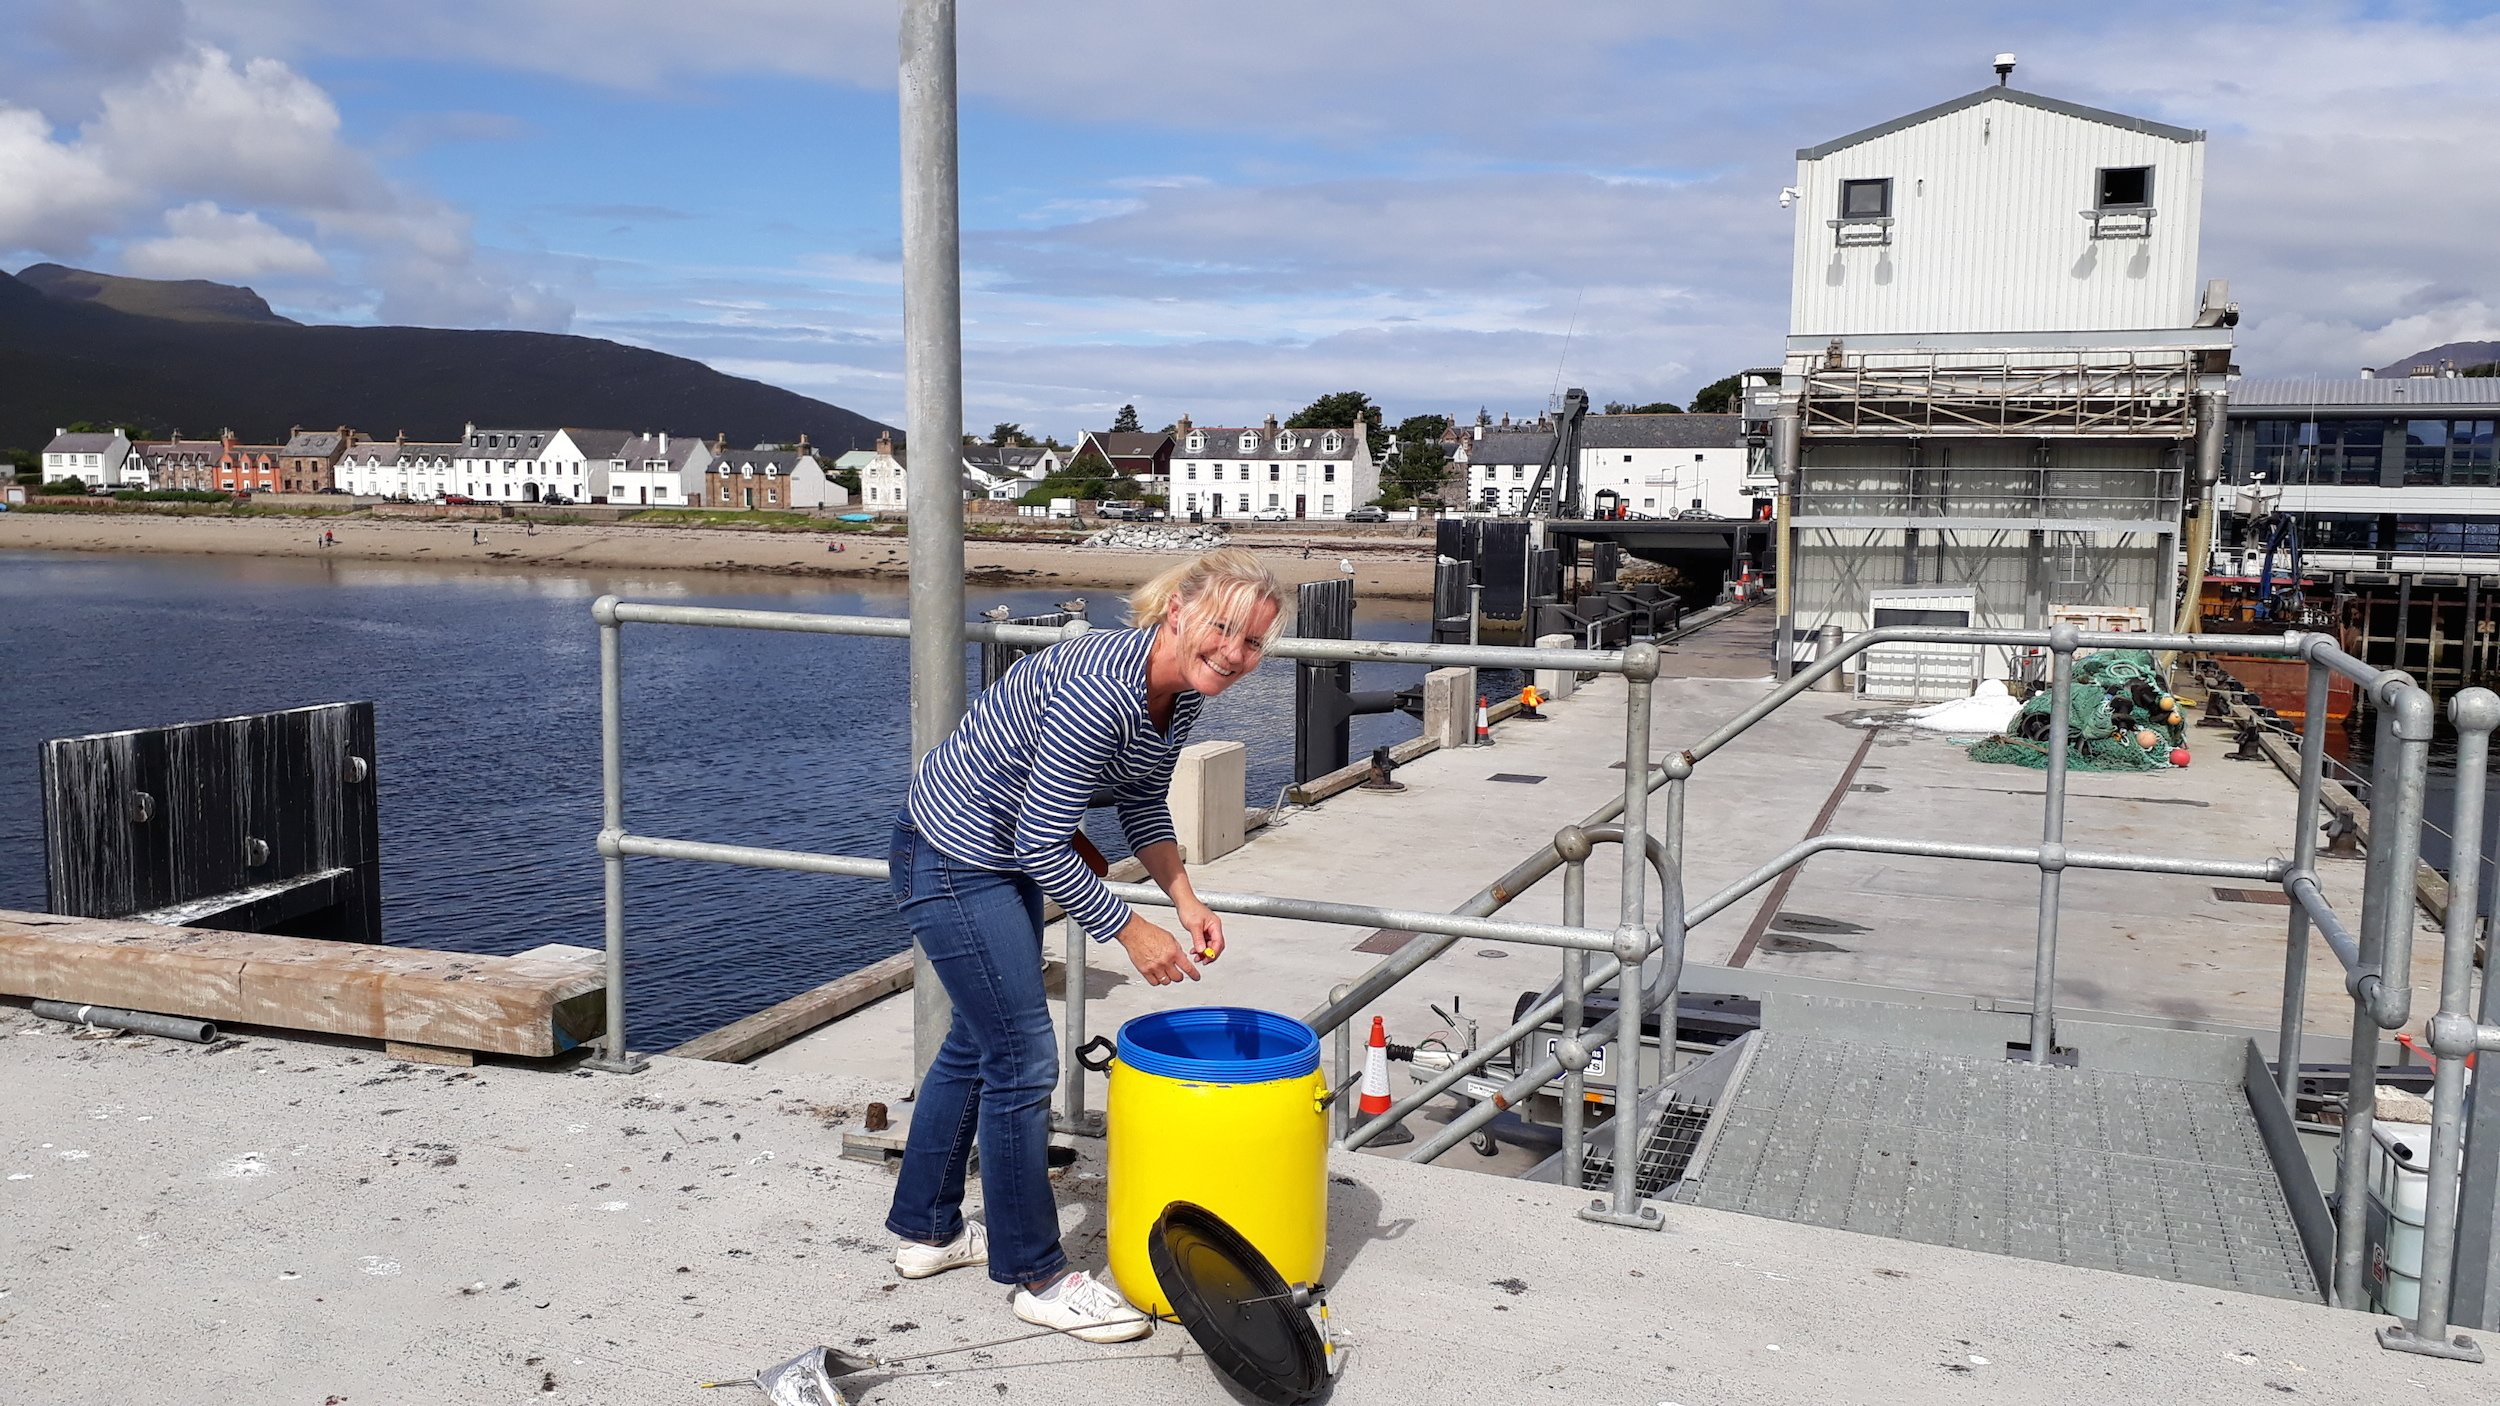 Me (Meg Rodger) installing the Storm Barrel on the end of Ullapool ferry pier for 2 weeks of wind drawing.